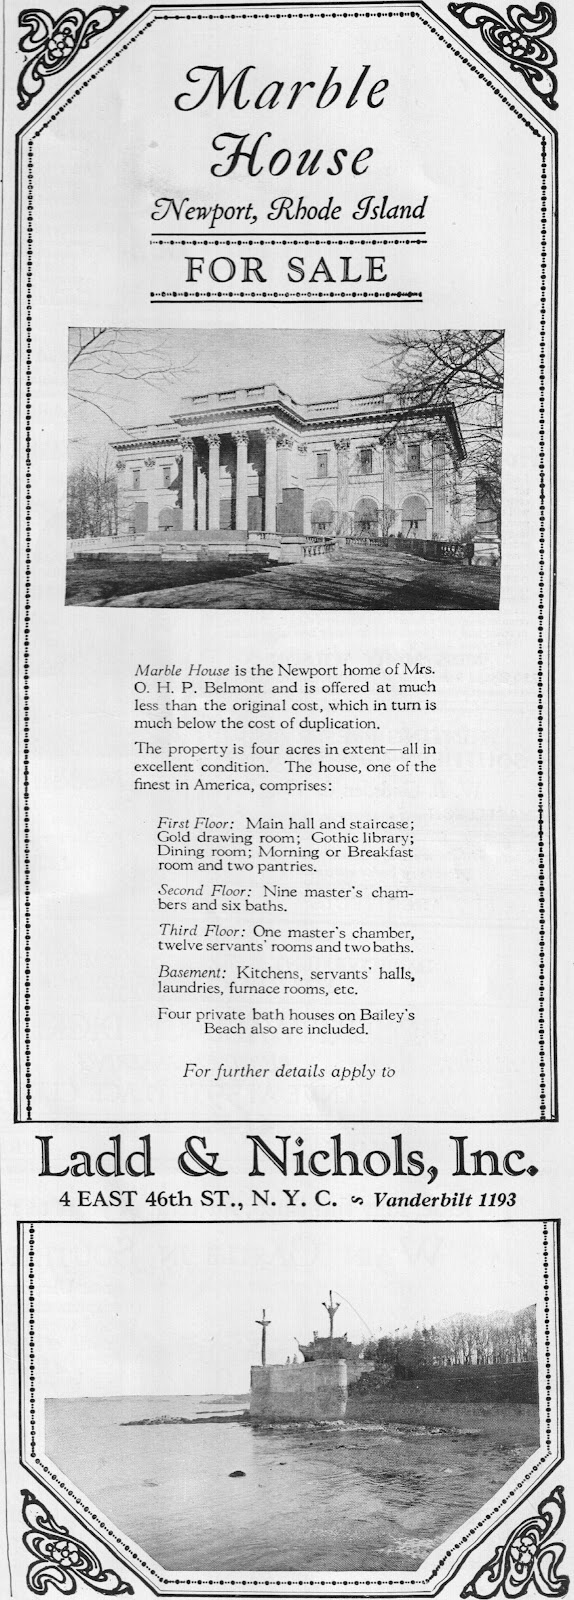 Marble House | Alva (Vanderbilt) Belmont sold Marble House to Frederick H. Prince in 1932. It was purchased 1963 from the Prince estate by Alva's son, Harold S. Vanderbilt, who donated it to the  Preservation Society of Newport County.